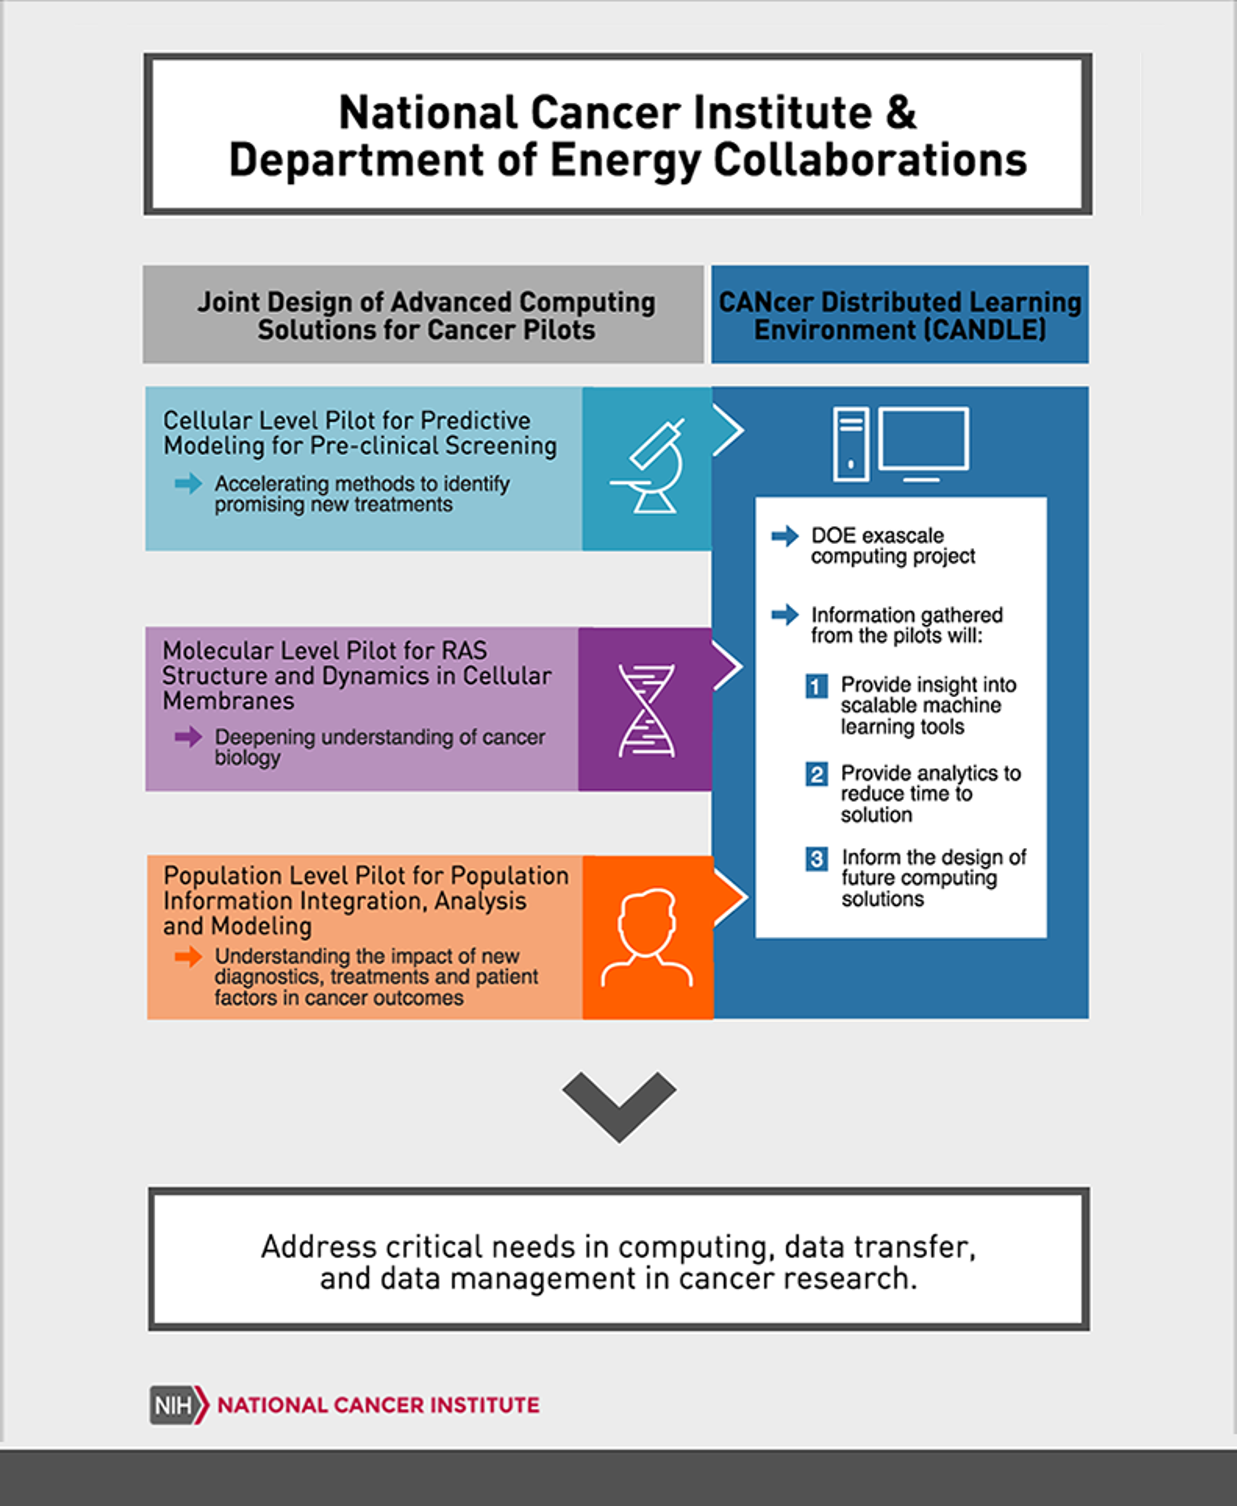 National Cancer Institute & Department of Energy Collaborations